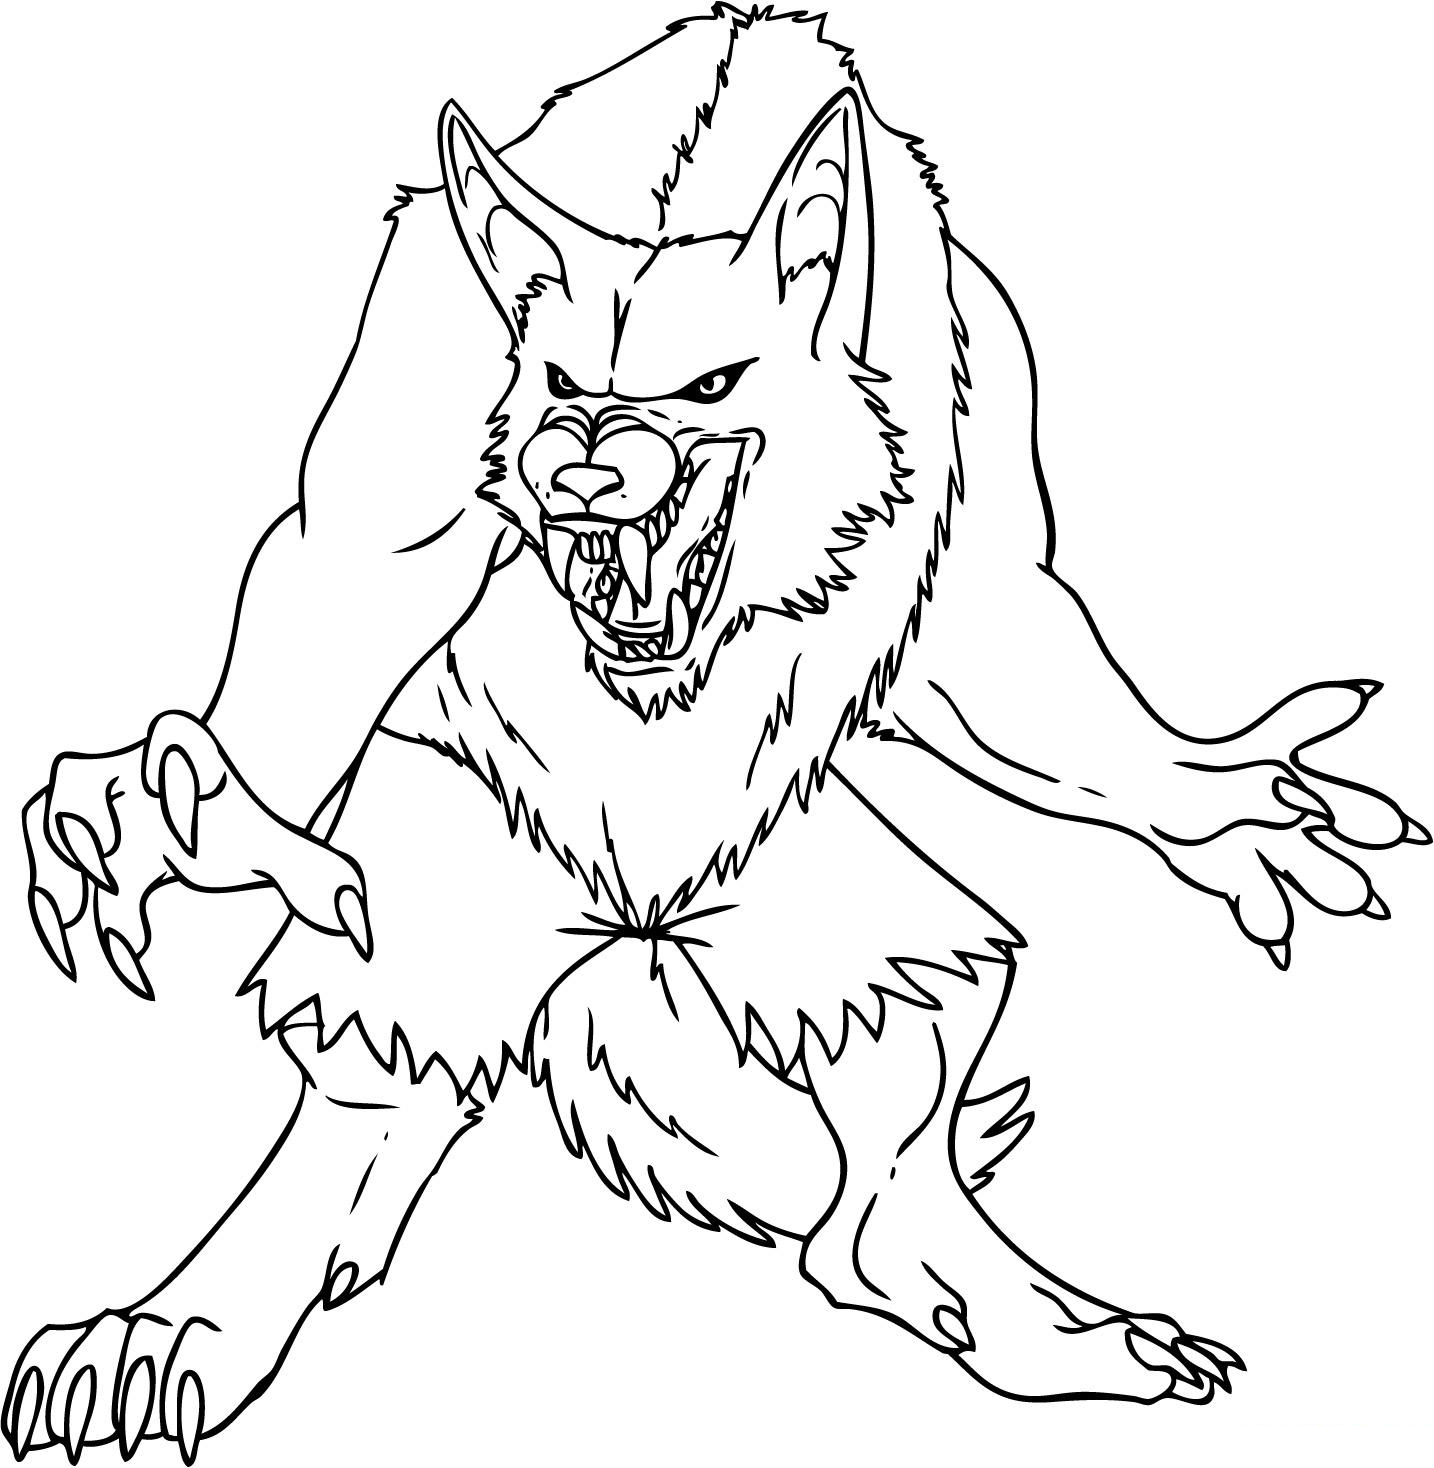 werewolf coloring pictures scary wolf drawing at getdrawings free download pictures coloring werewolf